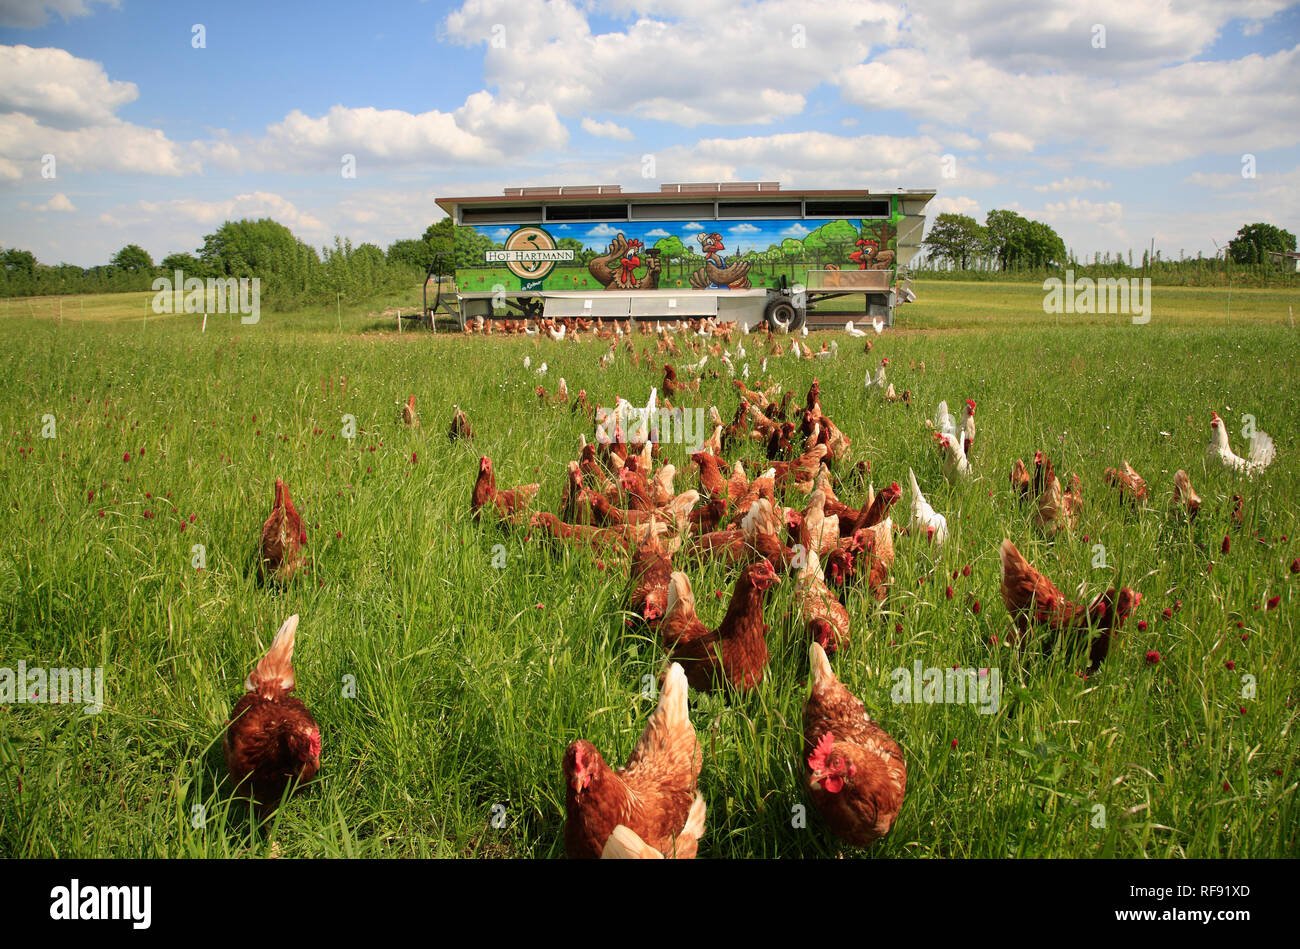 Free running chicken, Lüneburger Heide, Lower Saxony, Germany, Europe - Stock Image